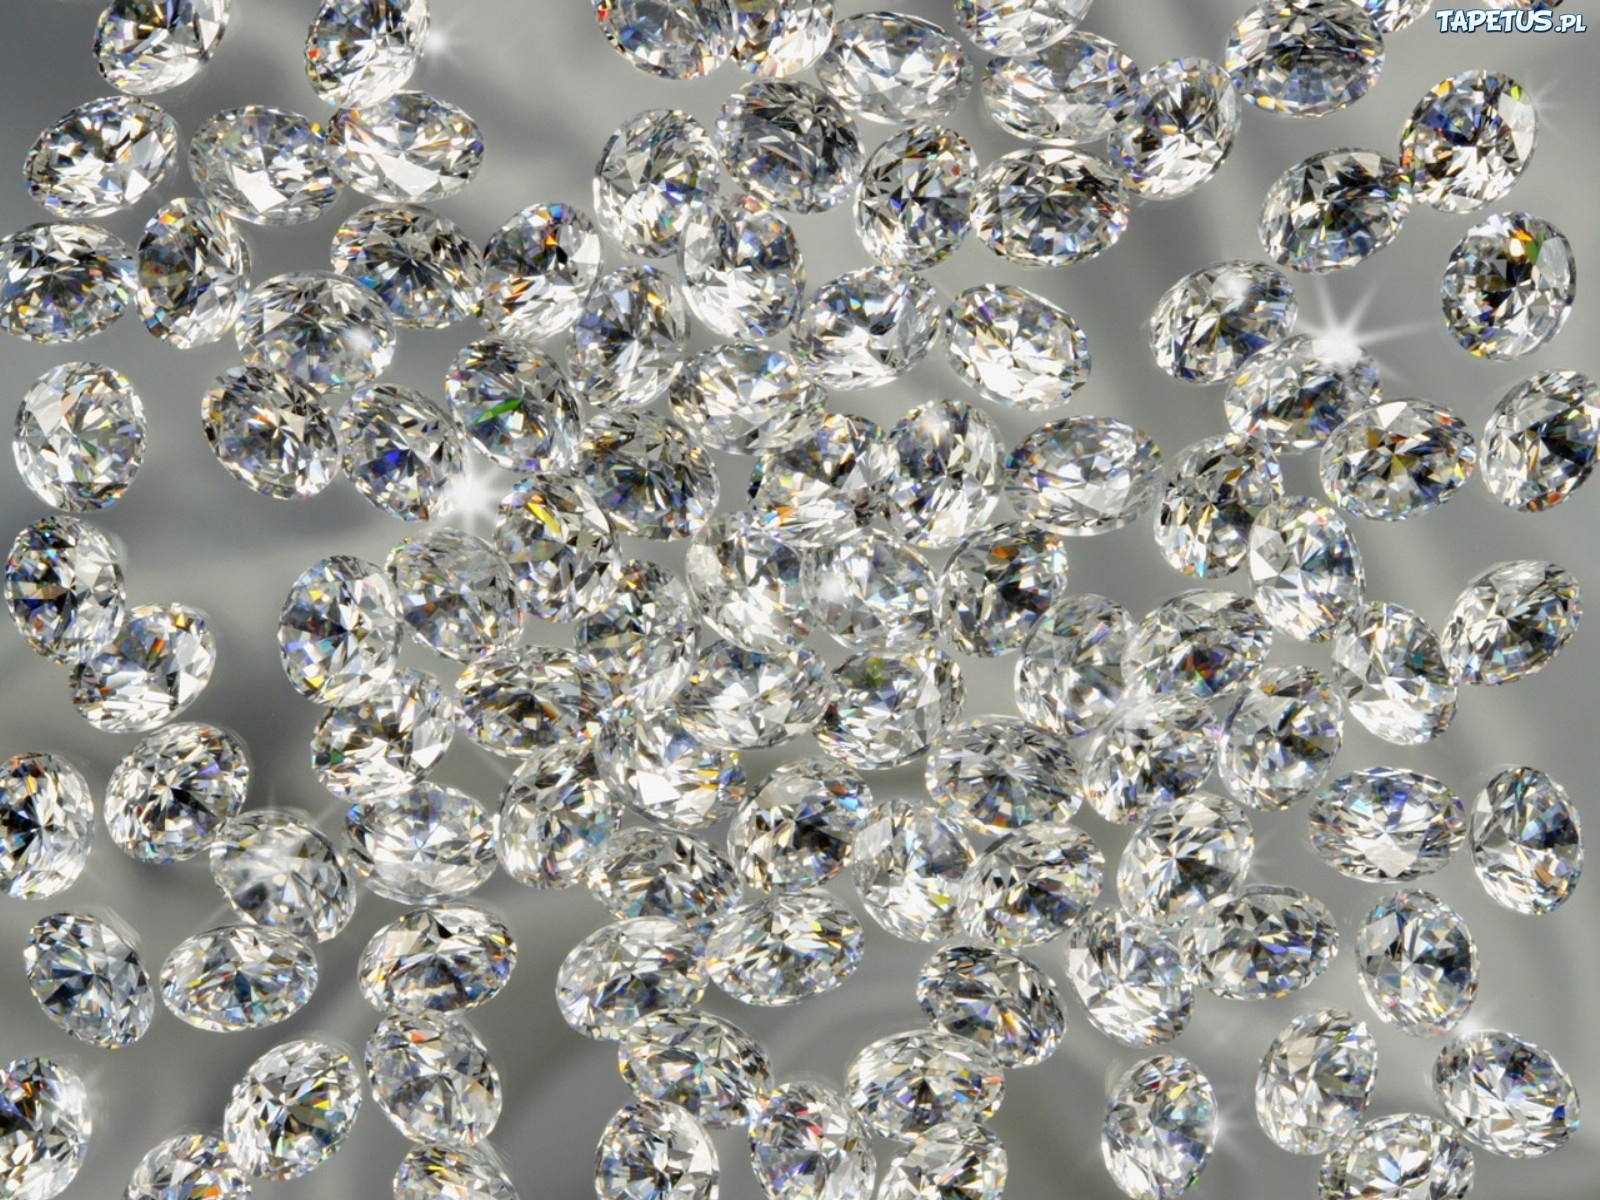 Diamonds And Pearls Wallpaper  Wallpapersafari. Fire Diamond. Pale Yellow Diamond. Claw Prong Diamond. Zari Diamond. Pipe Diamond. Faro Diamond. Encrusted Diamond. Found Cave Diamond